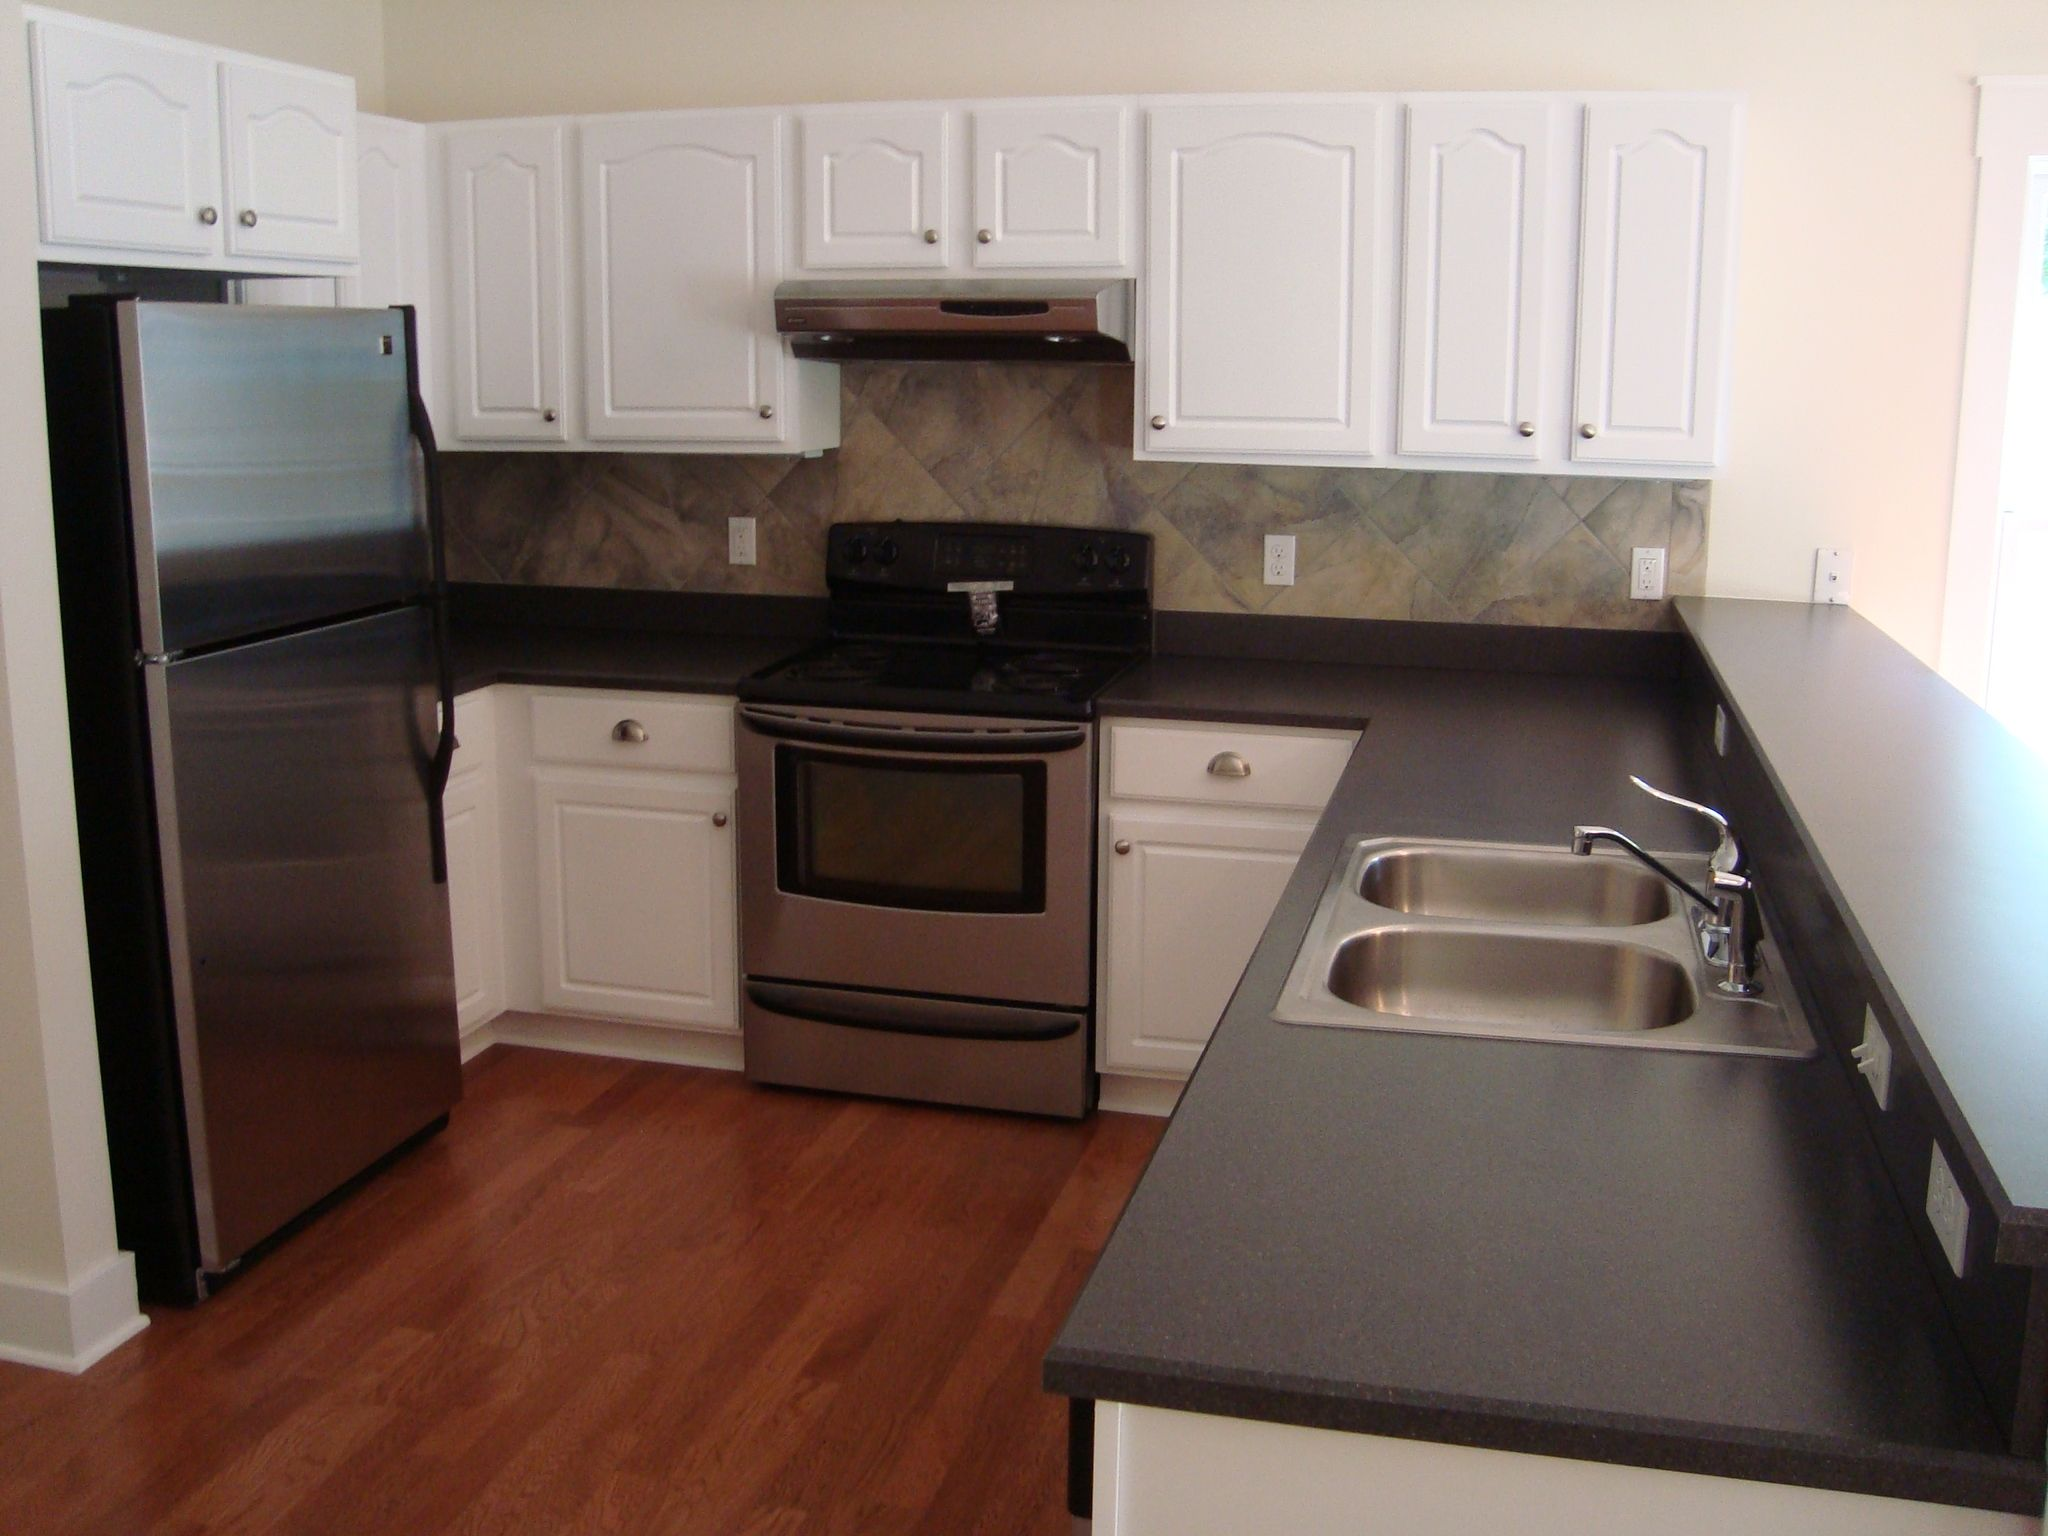 Brown Kitchen Cabinets With White Appliances Love The Slightly Darker Red Tone Floor With The White